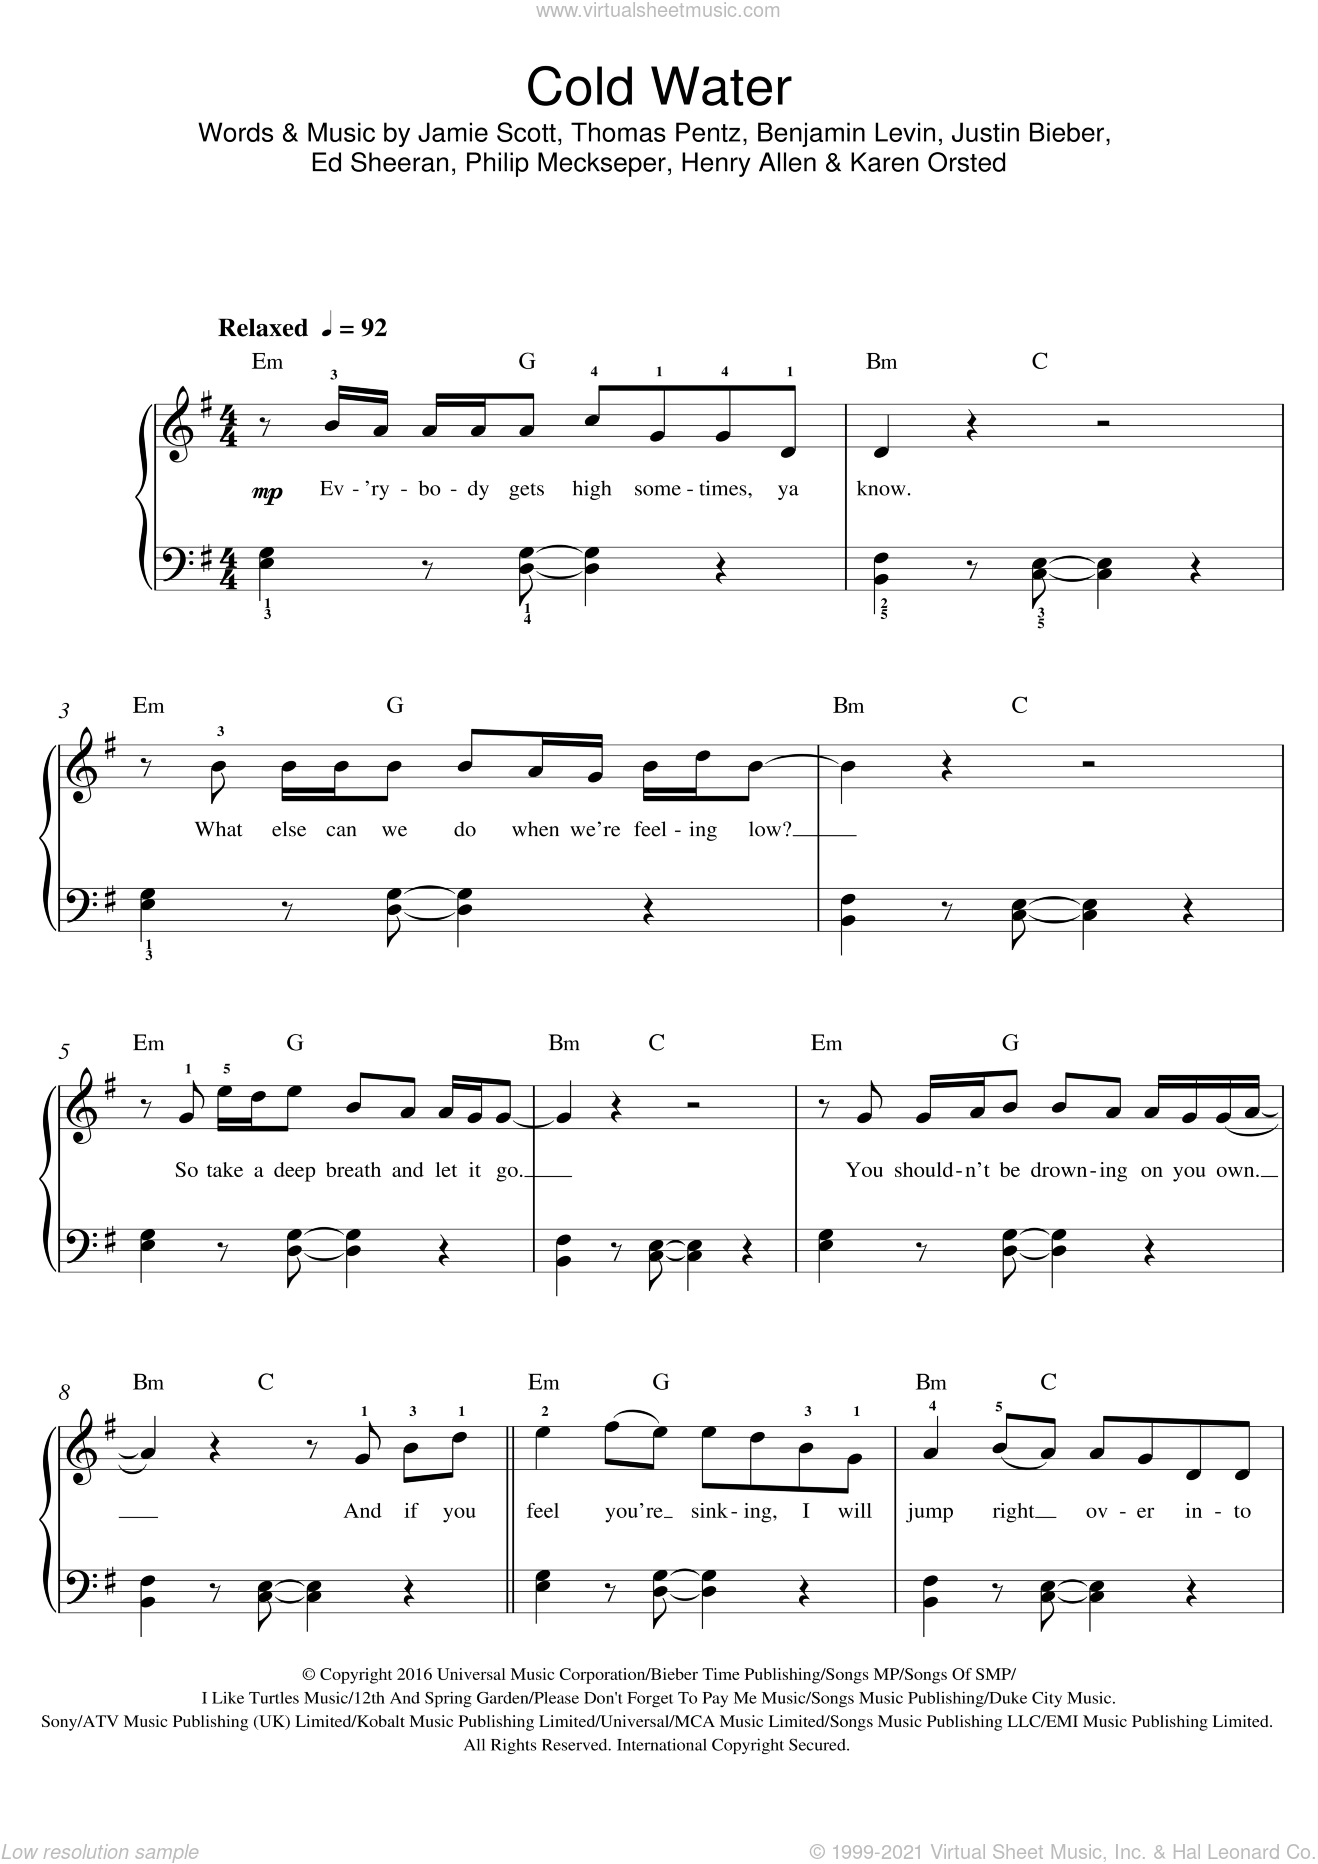 Cold Water (featuring Justin Bieber) sheet music for voice, piano or guitar by Thomas Wesley Pentz, Benjamin Levin, Ed Sheeran, Jamie Scott, Justin Bieber and Karen Orsted. Score Image Preview.